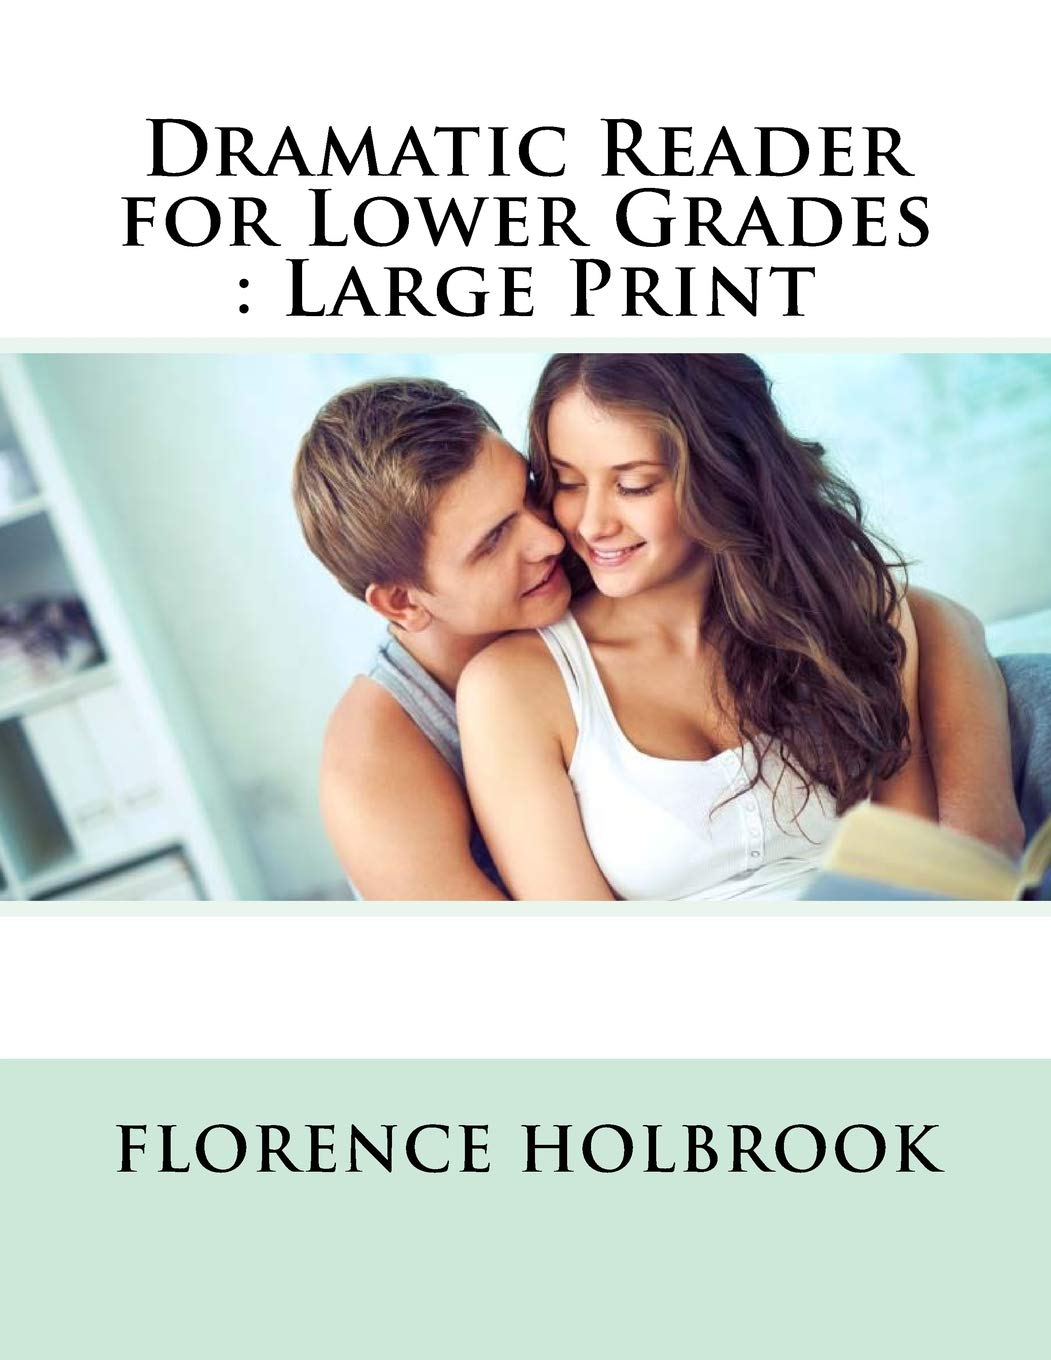 Dramatic Reader for Lower Grades